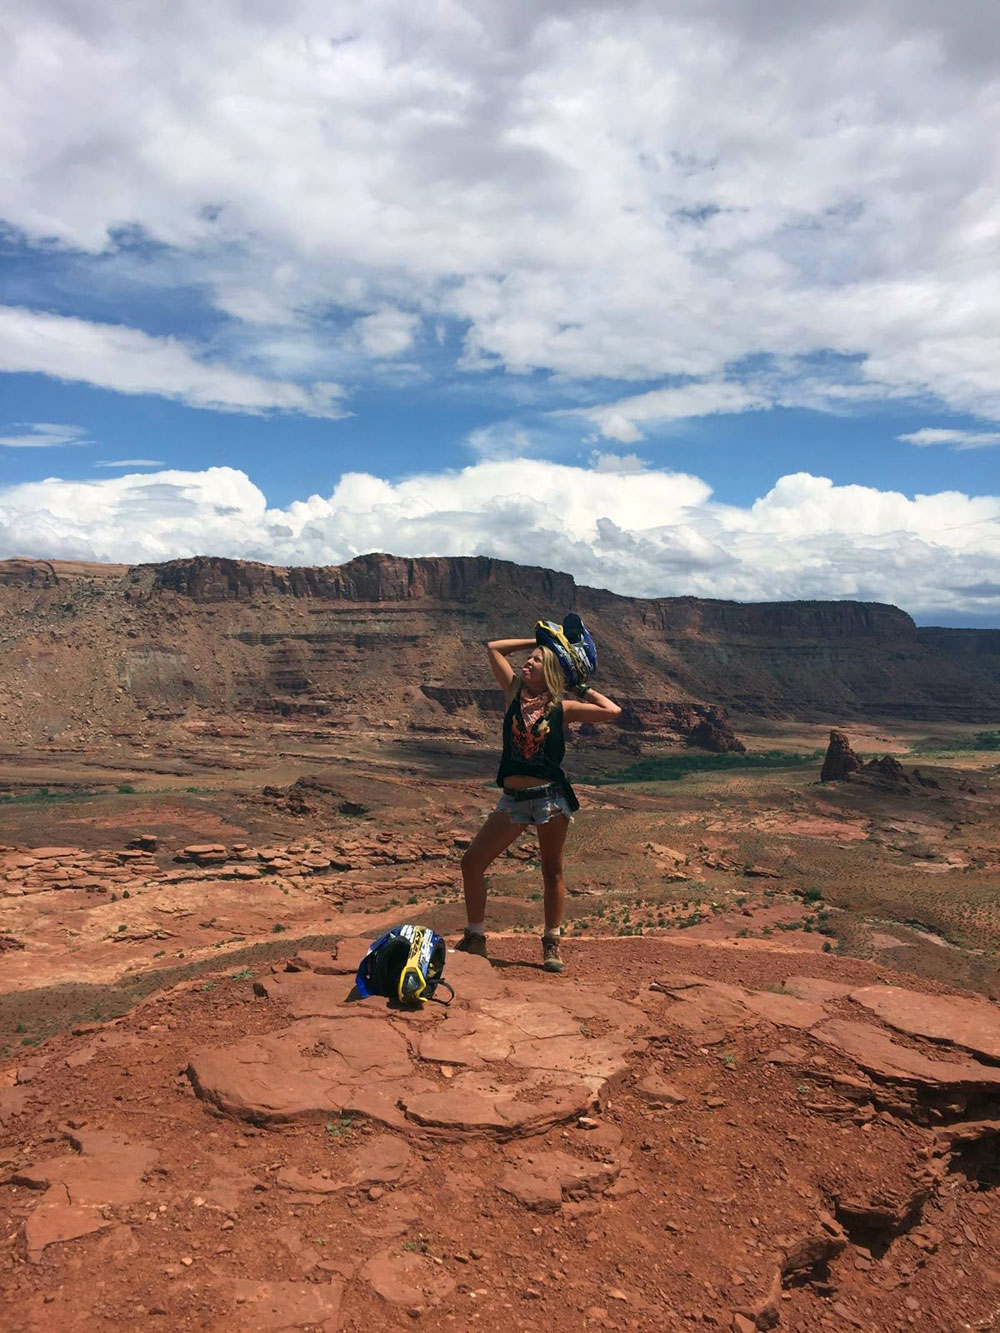 Kellie Mogg riding ATVs in Moab Utah during her Gap Year experience